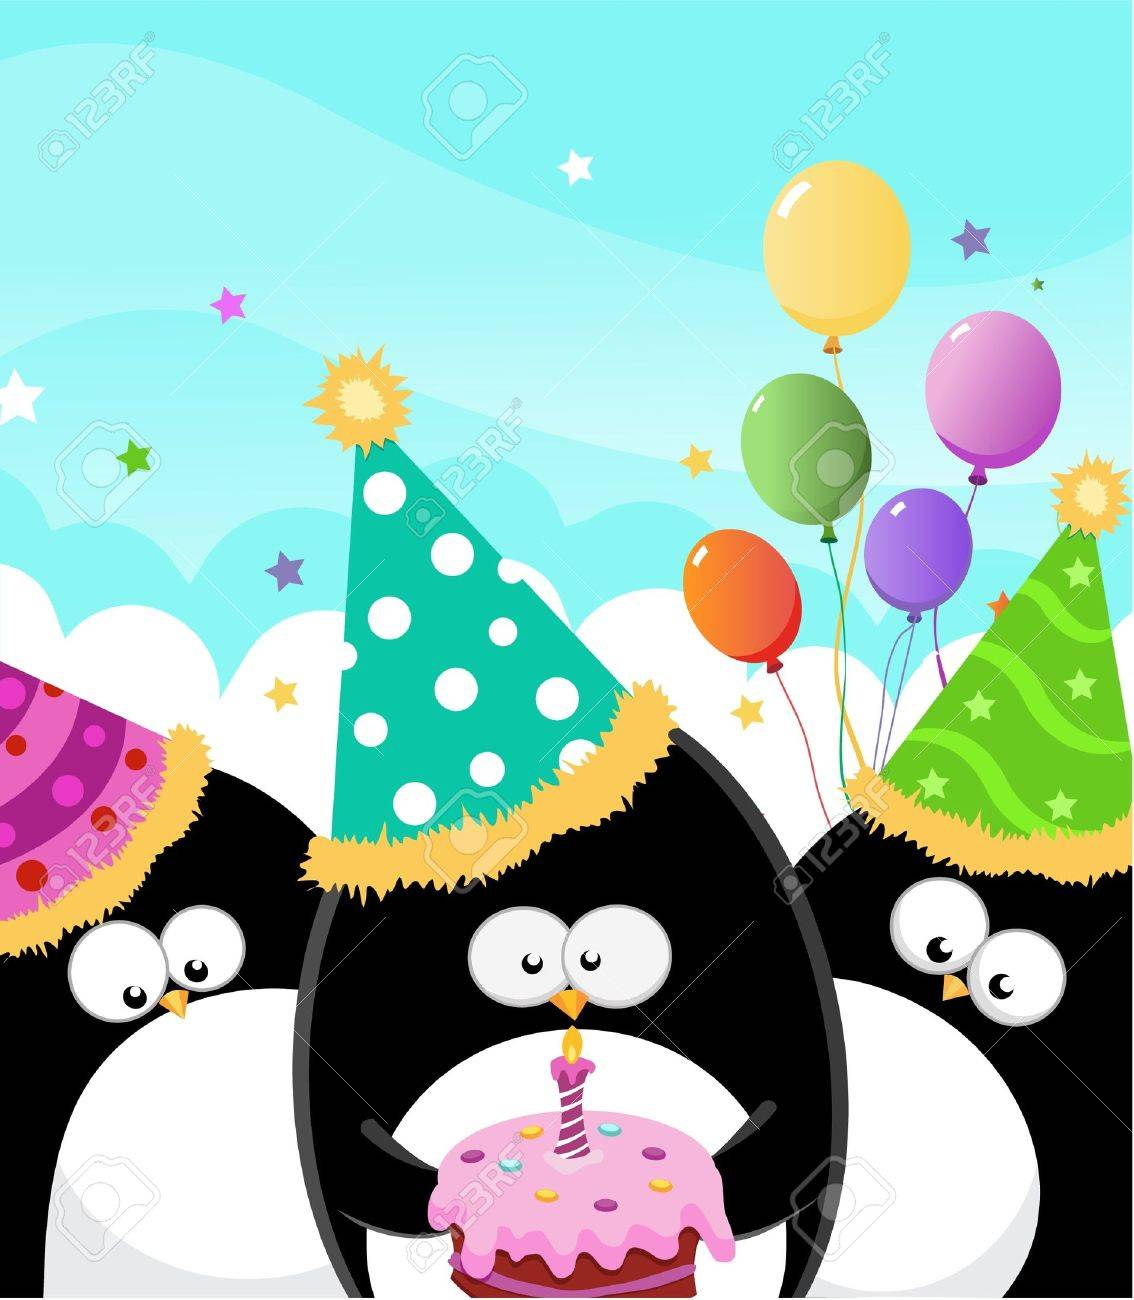 Happy Birthday Card Stock Vector - 9996129